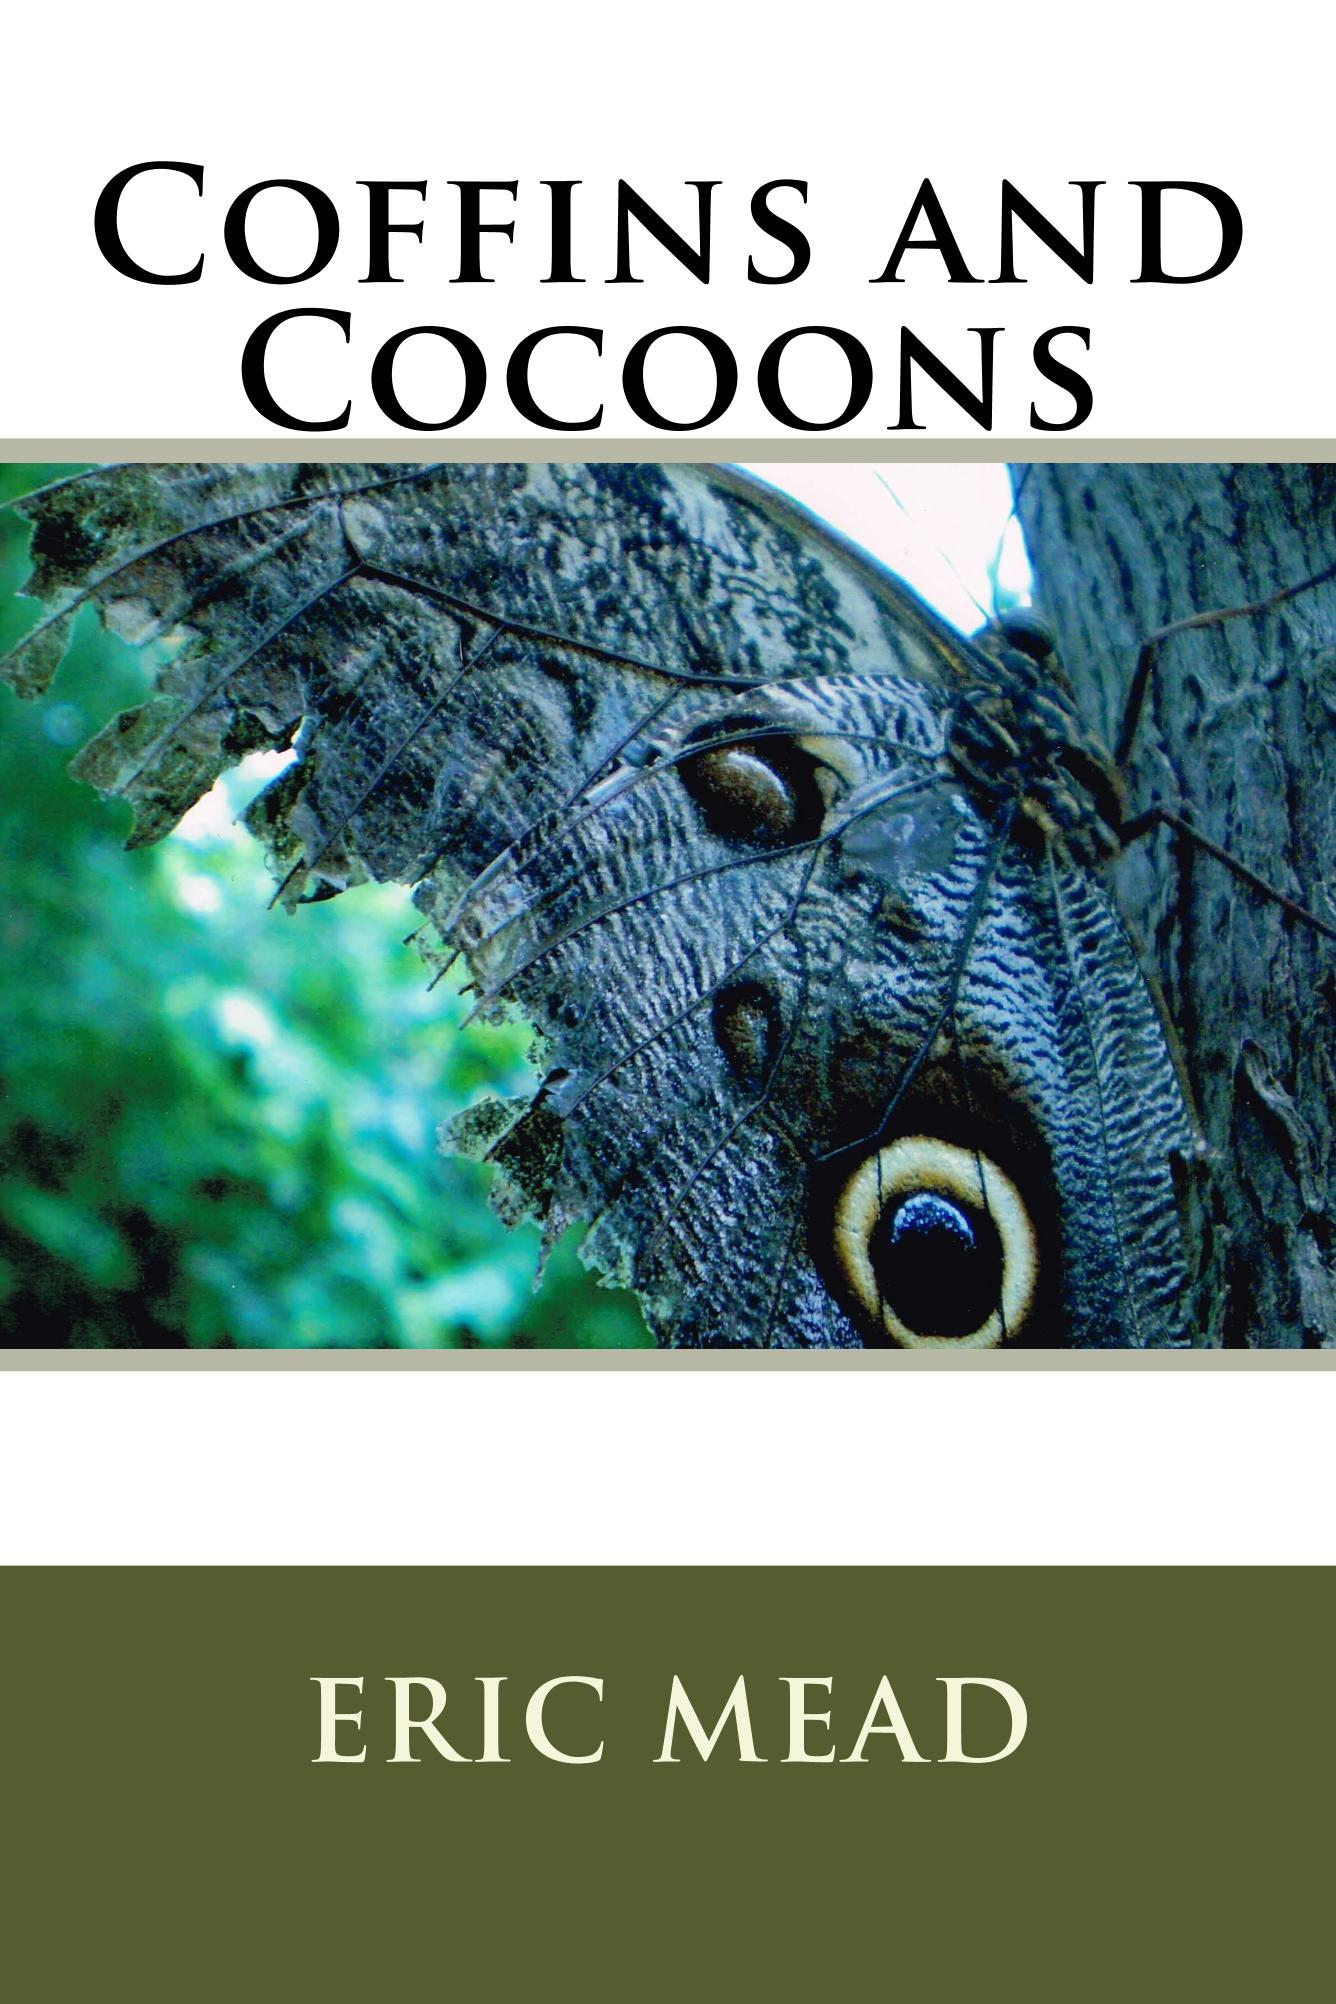 Coffins and Cocoons